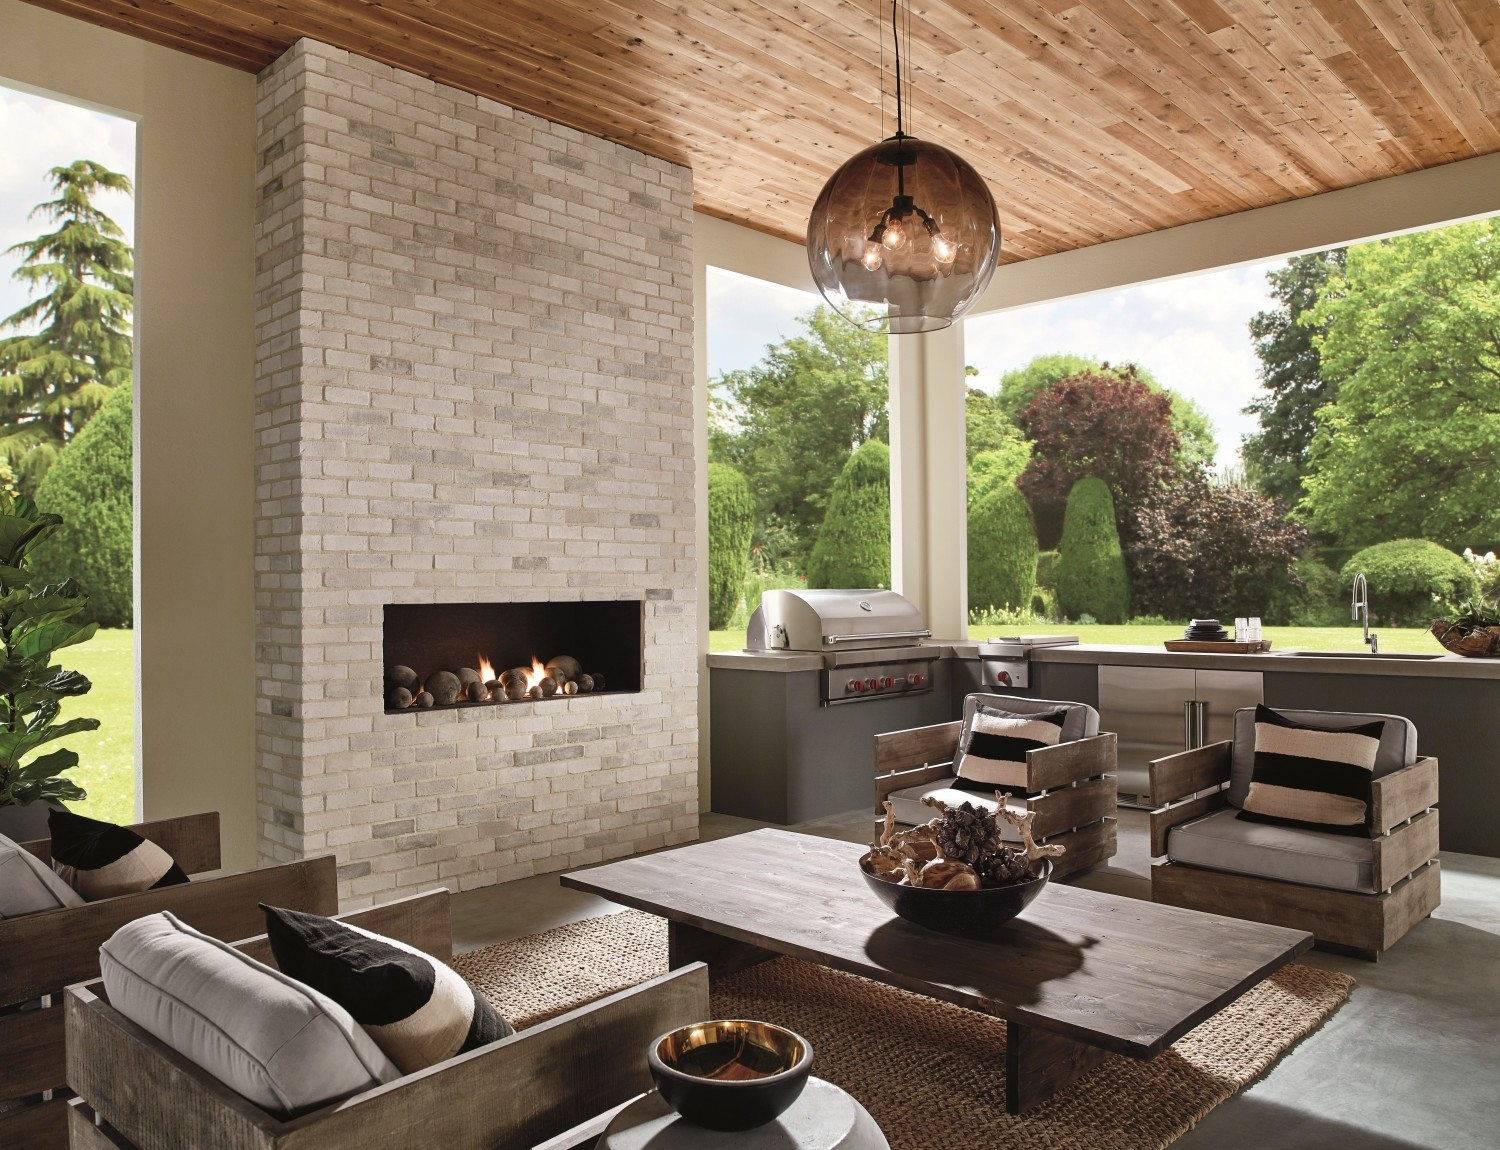 Eldorado Stone Fireplaces Newport Ln Pinterest Eldorado Intended For Eldorado Stone Outdoor Kitchen Eldorado Stone Outdoor Kitchen